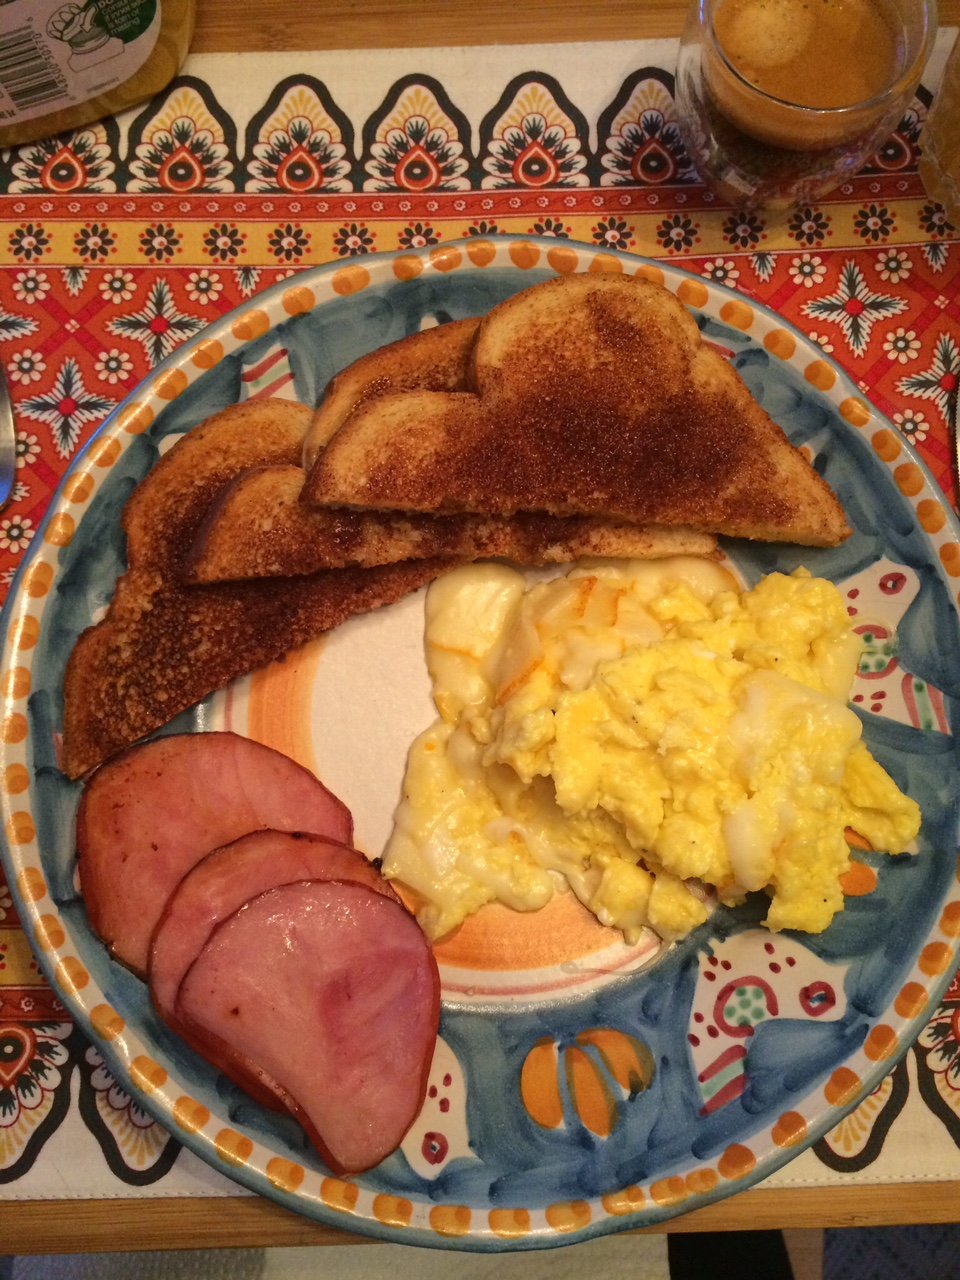 Hardy Breakfast to Energize the Day